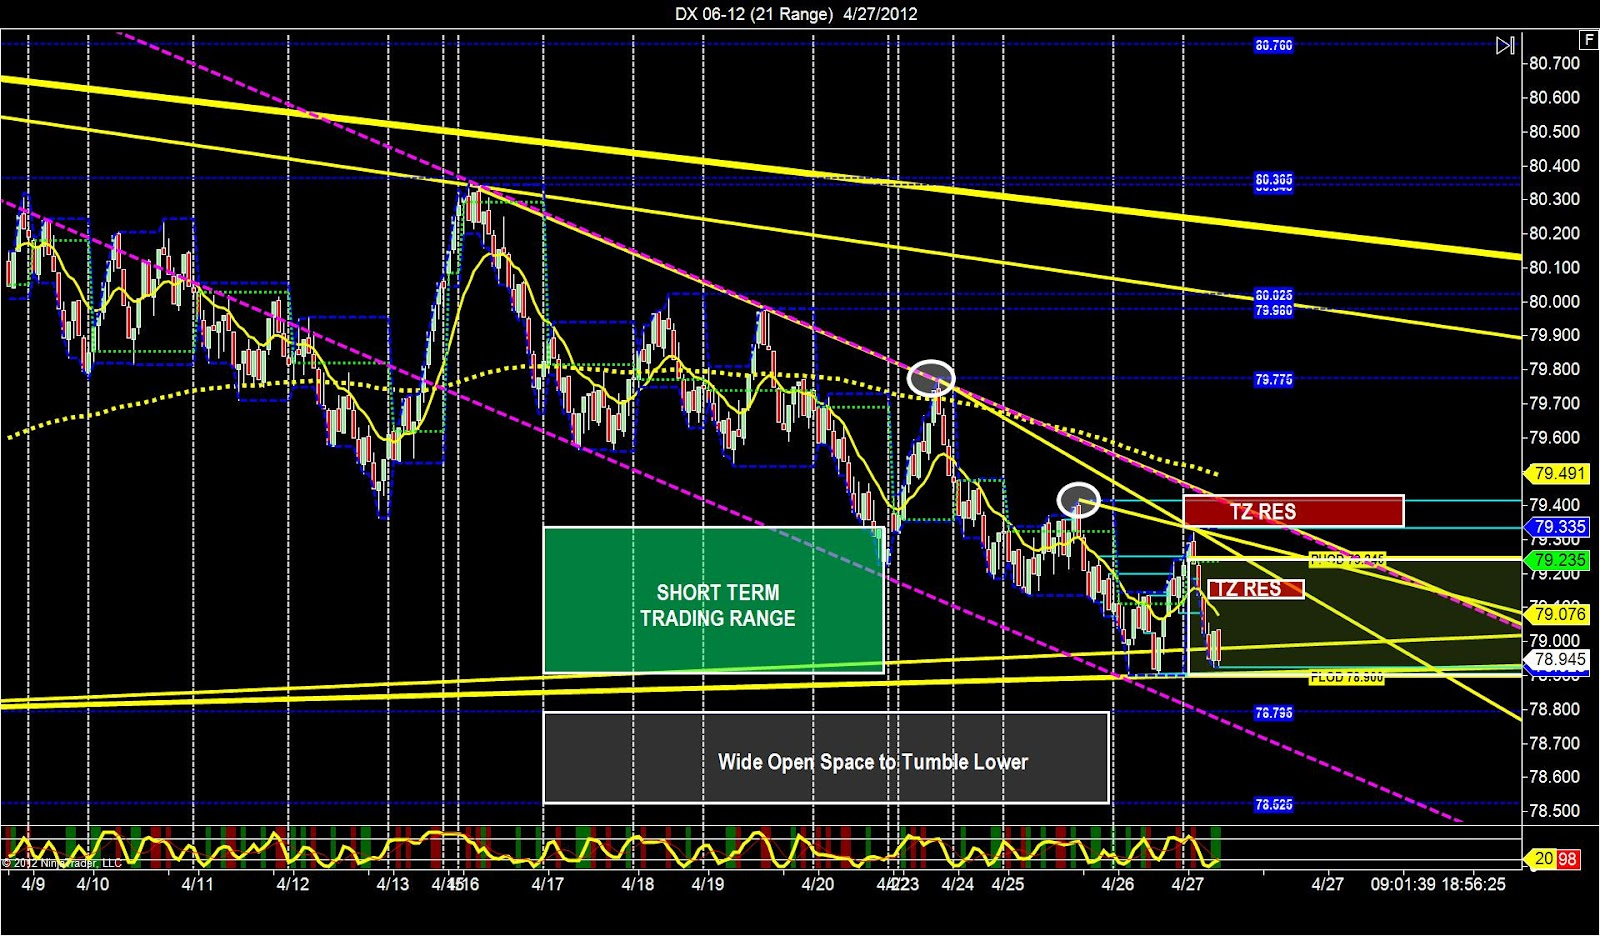 Dollar index trading strategy